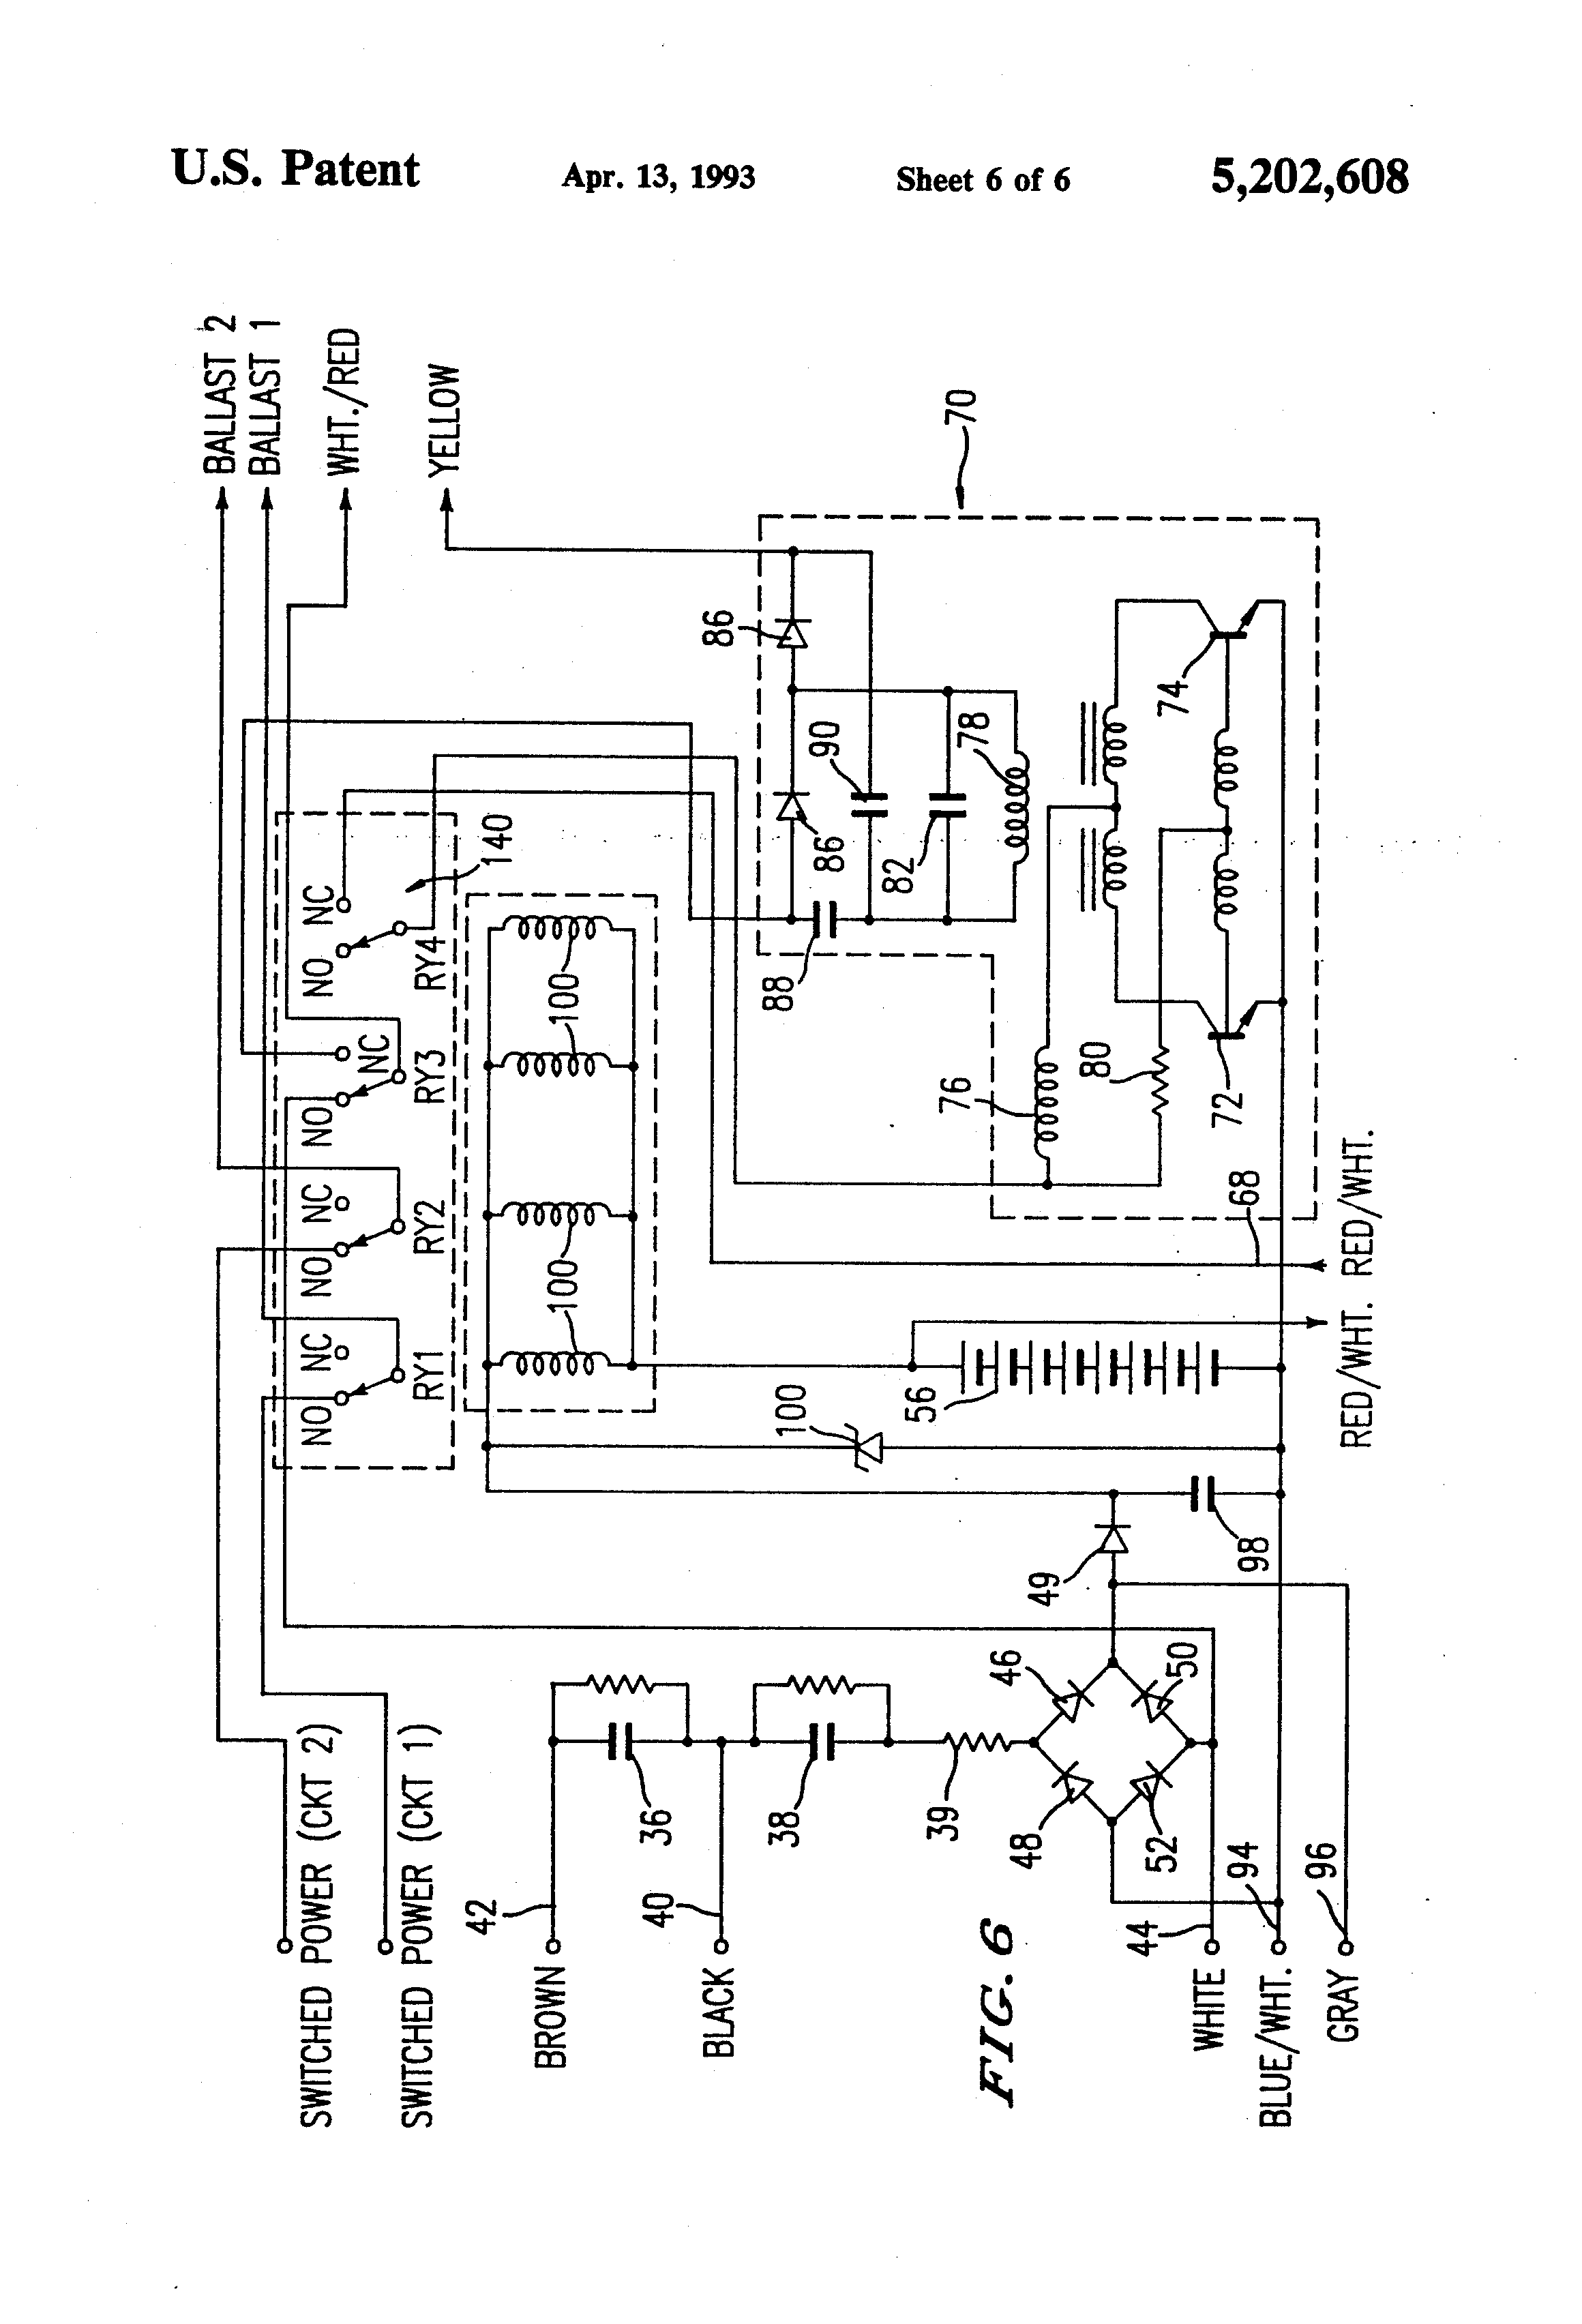 Philips Bodine B100 Wiring Diagram : 34 Wiring Diagram